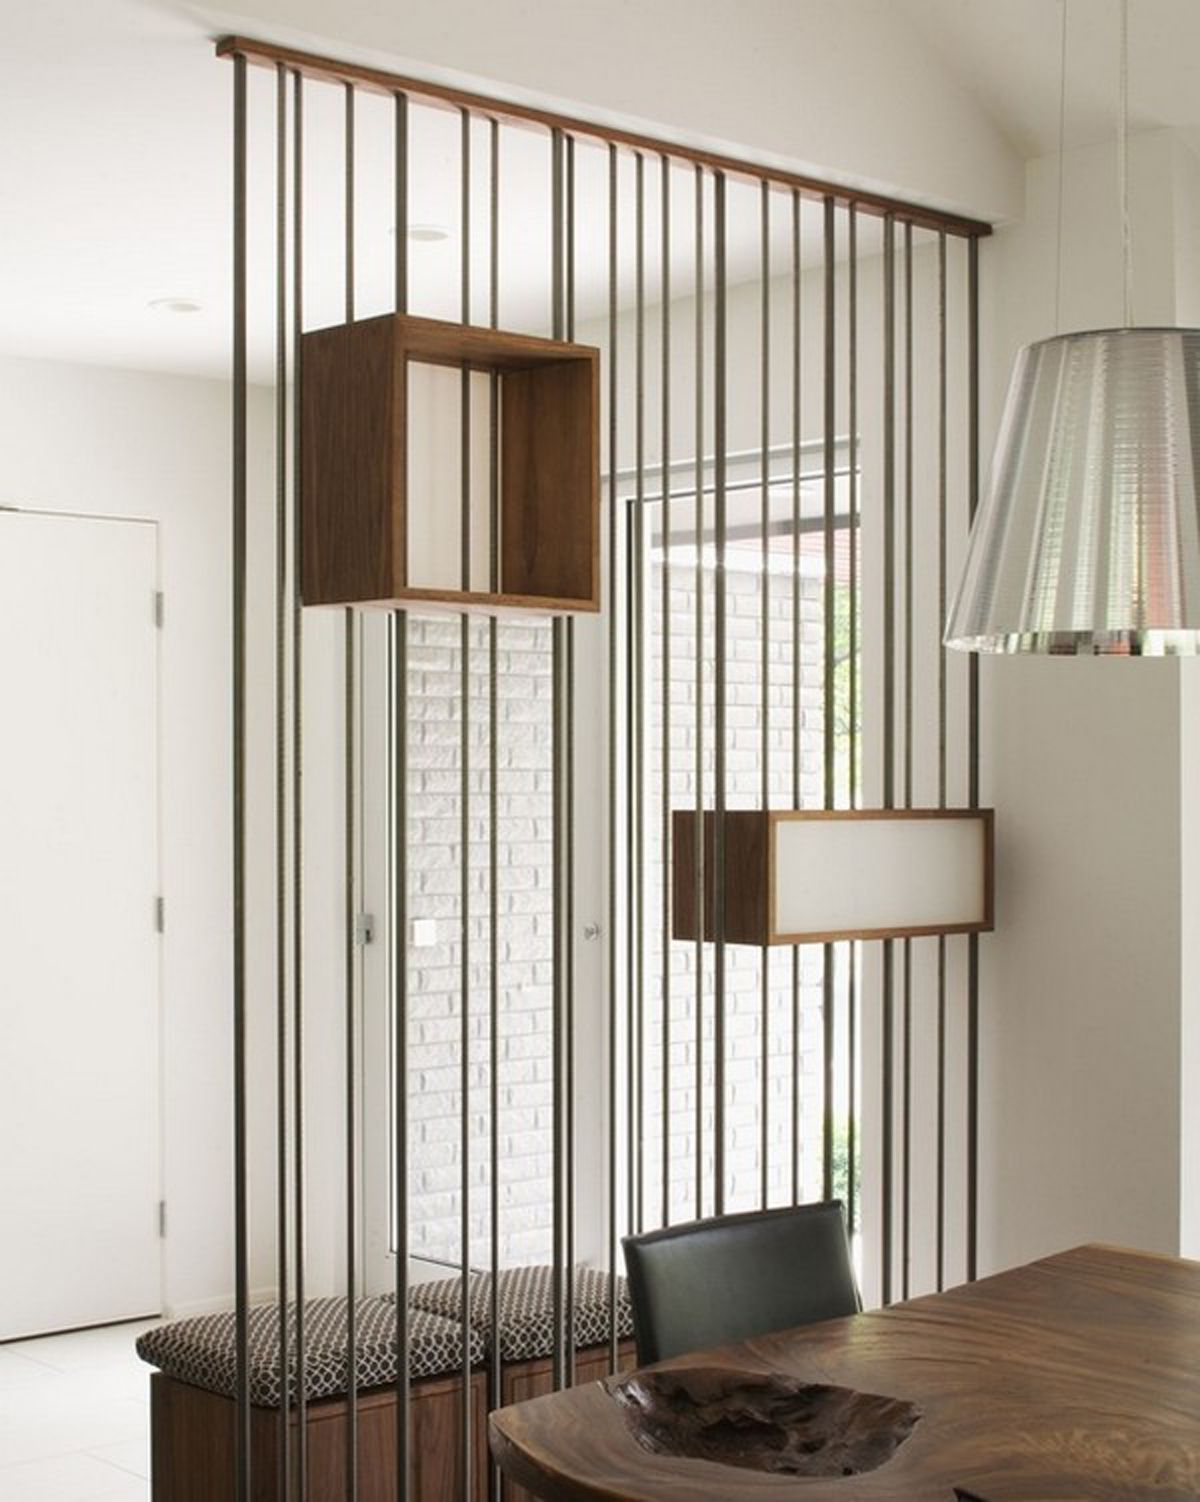 Interior unique room divider ideas without walls unusual room divider with functional design as a shelf ház room house és living room